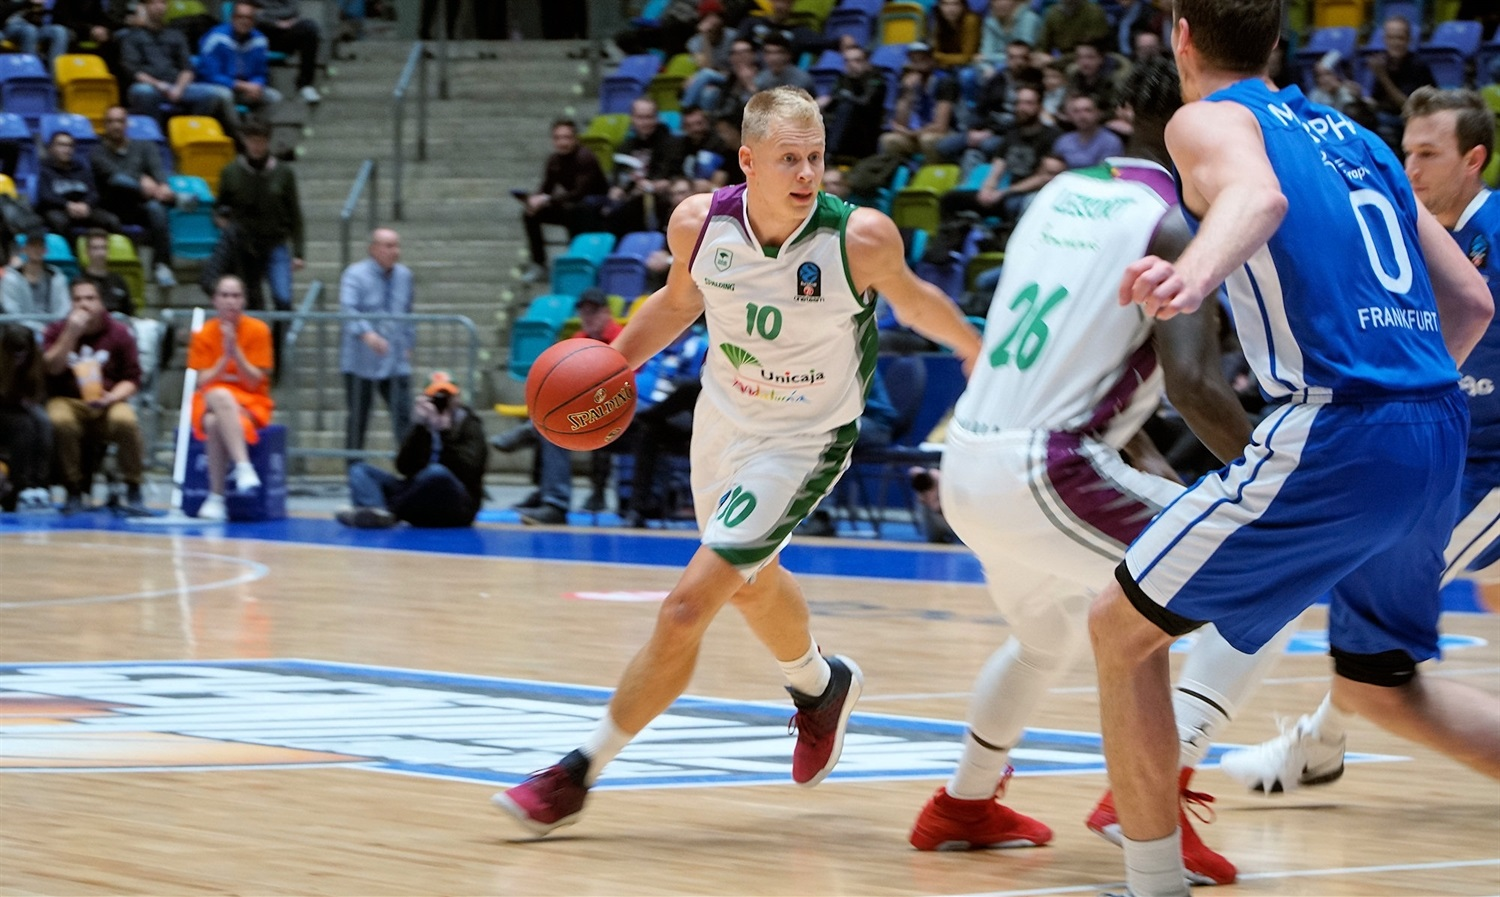 Sasu Salin - Unicaja Malaga (photo Skyliners) - EC18